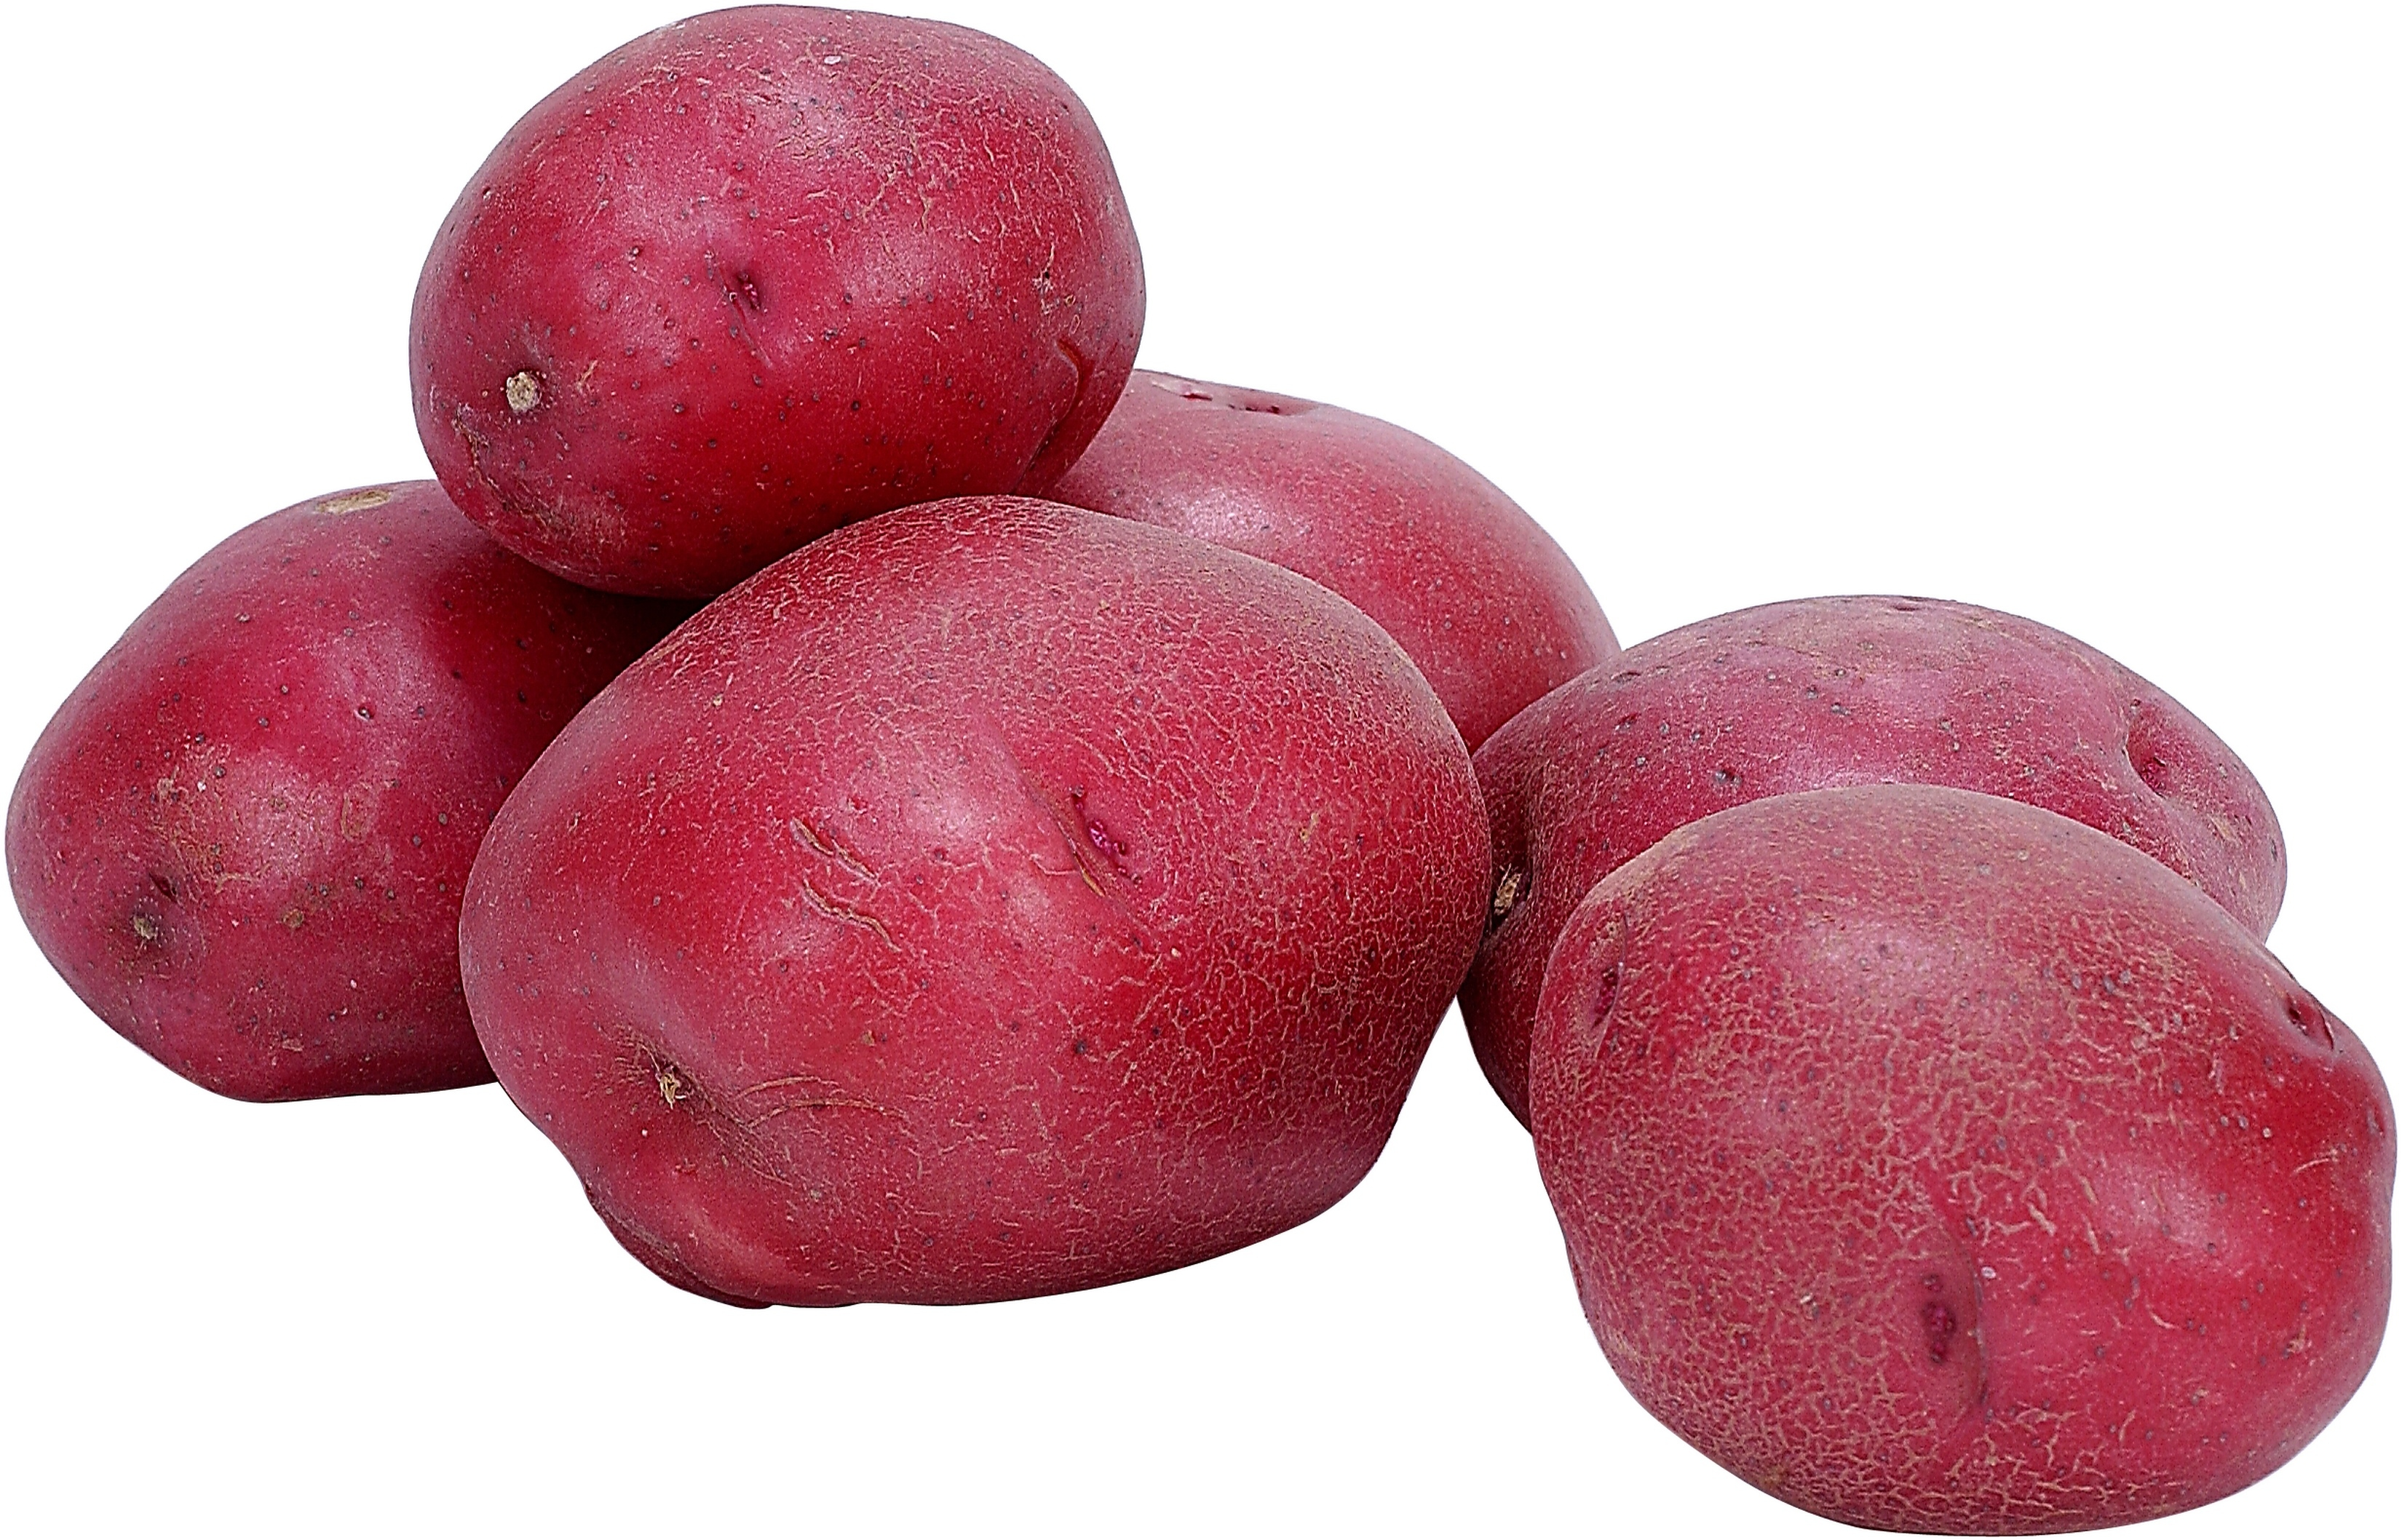 Red pontiac potatoes days to maturity